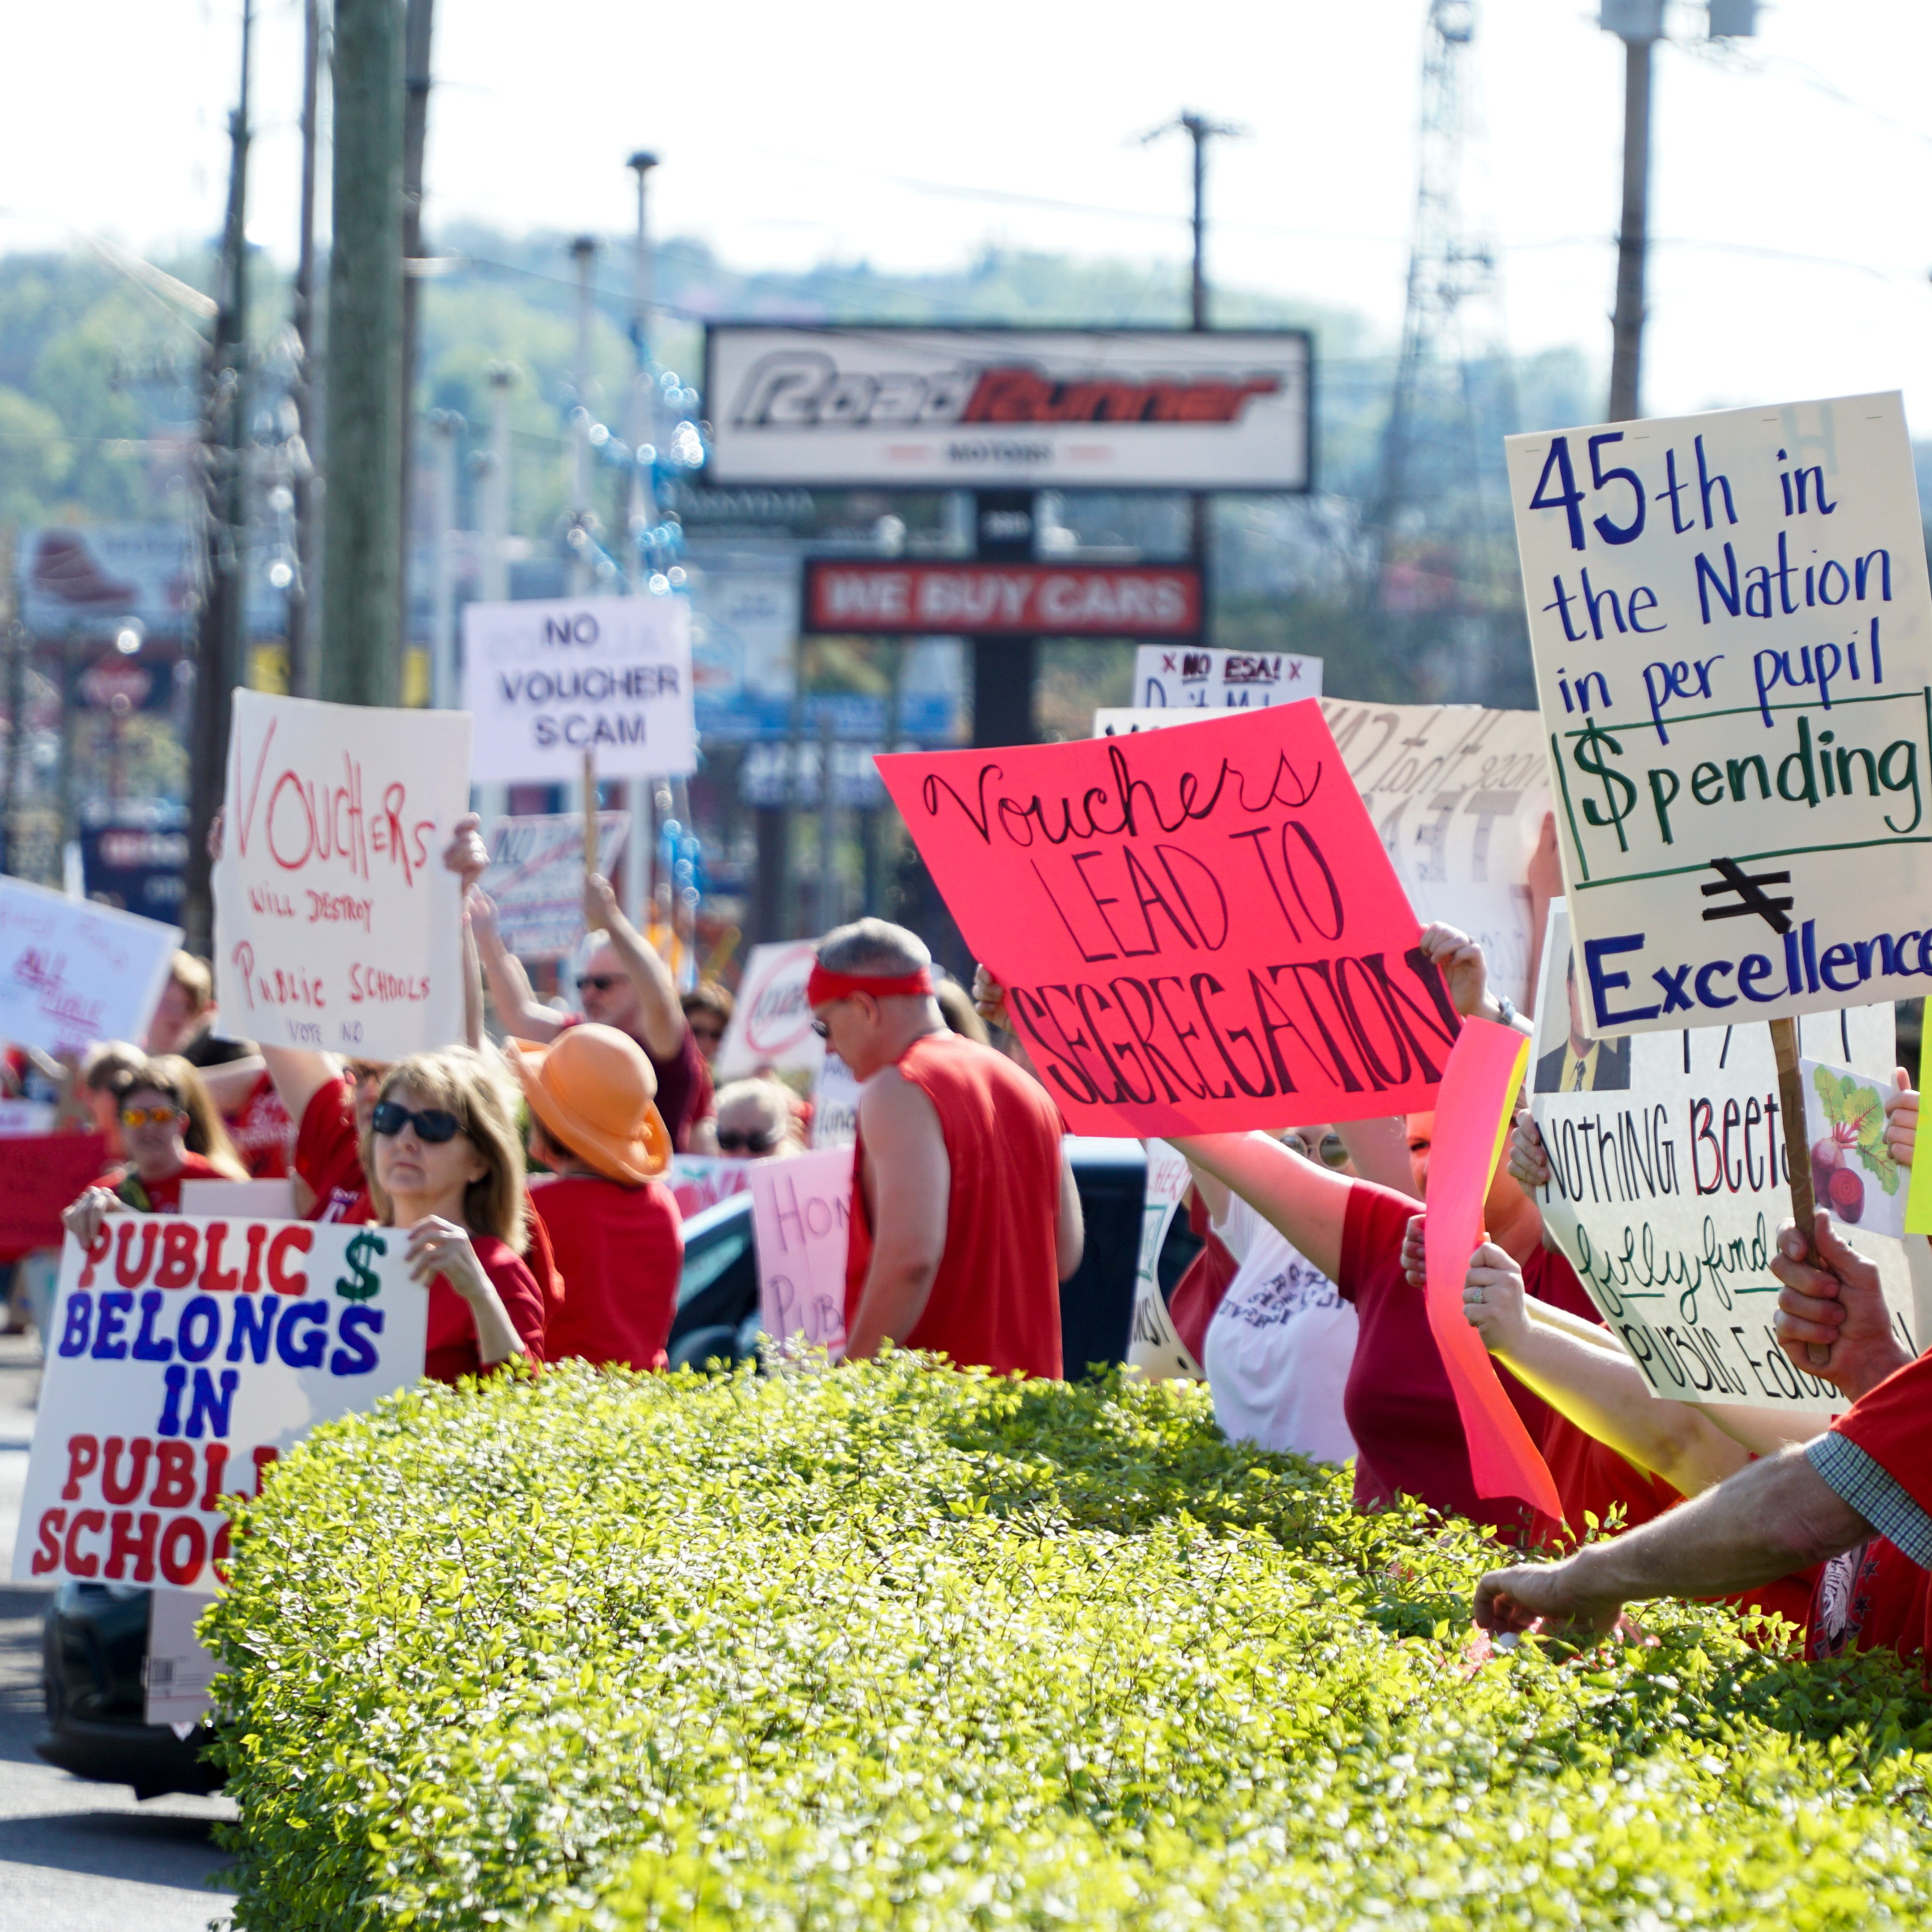 Anti-voucher demonstrators protest Gov. Bill Lee outside GOP dinner in Knoxville